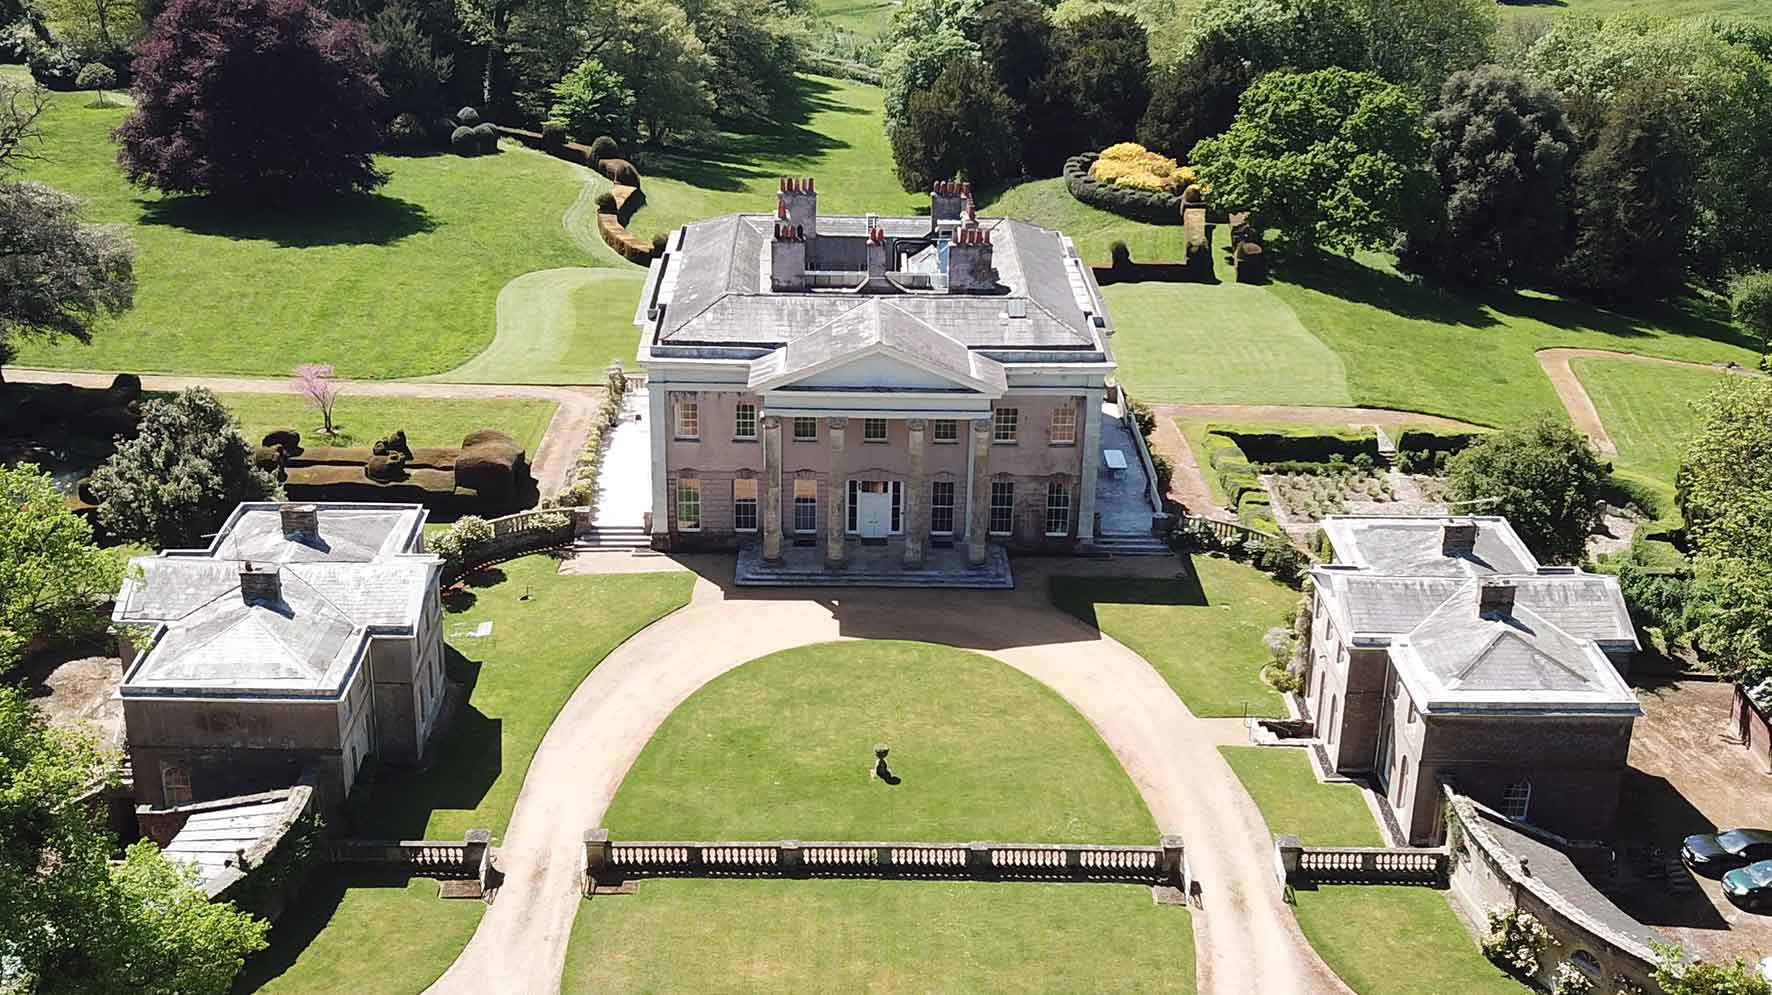 An aerial view of Hale Park House